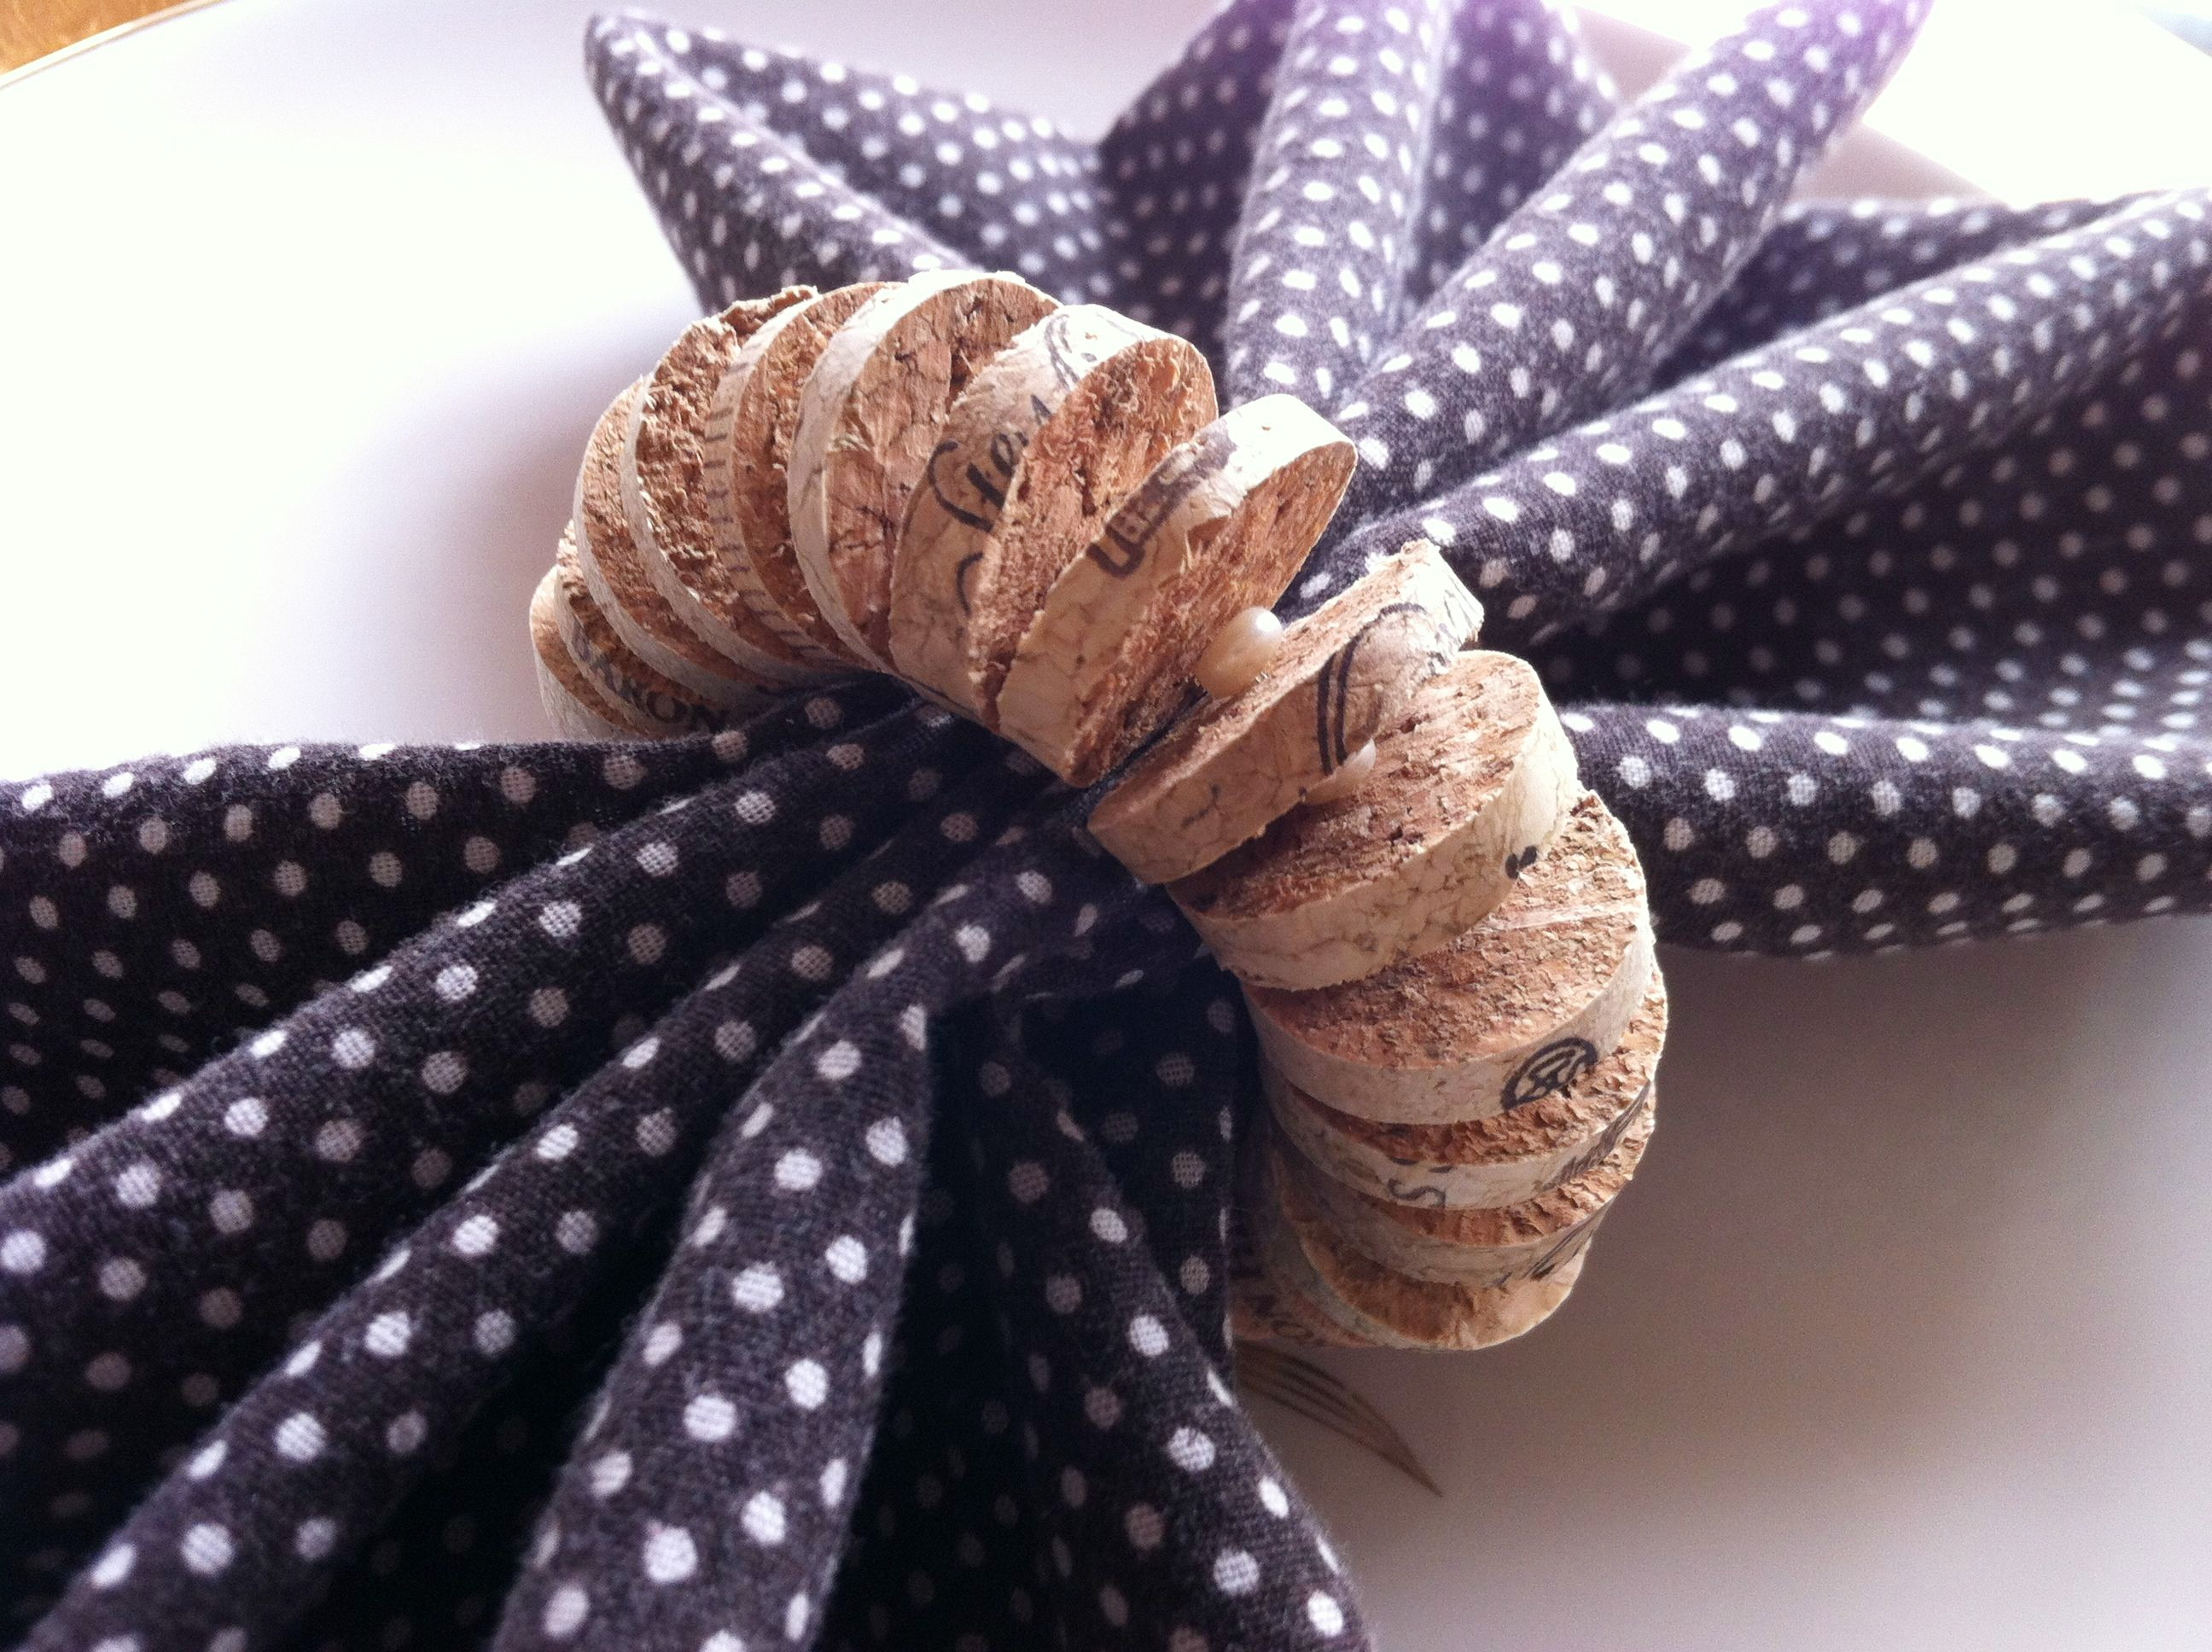 Raise a glass to recycled wine cork craftsd a giveaway the weekend in napa kin rings diy recycled wine cork napkin rings solutioingenieria Choice Image